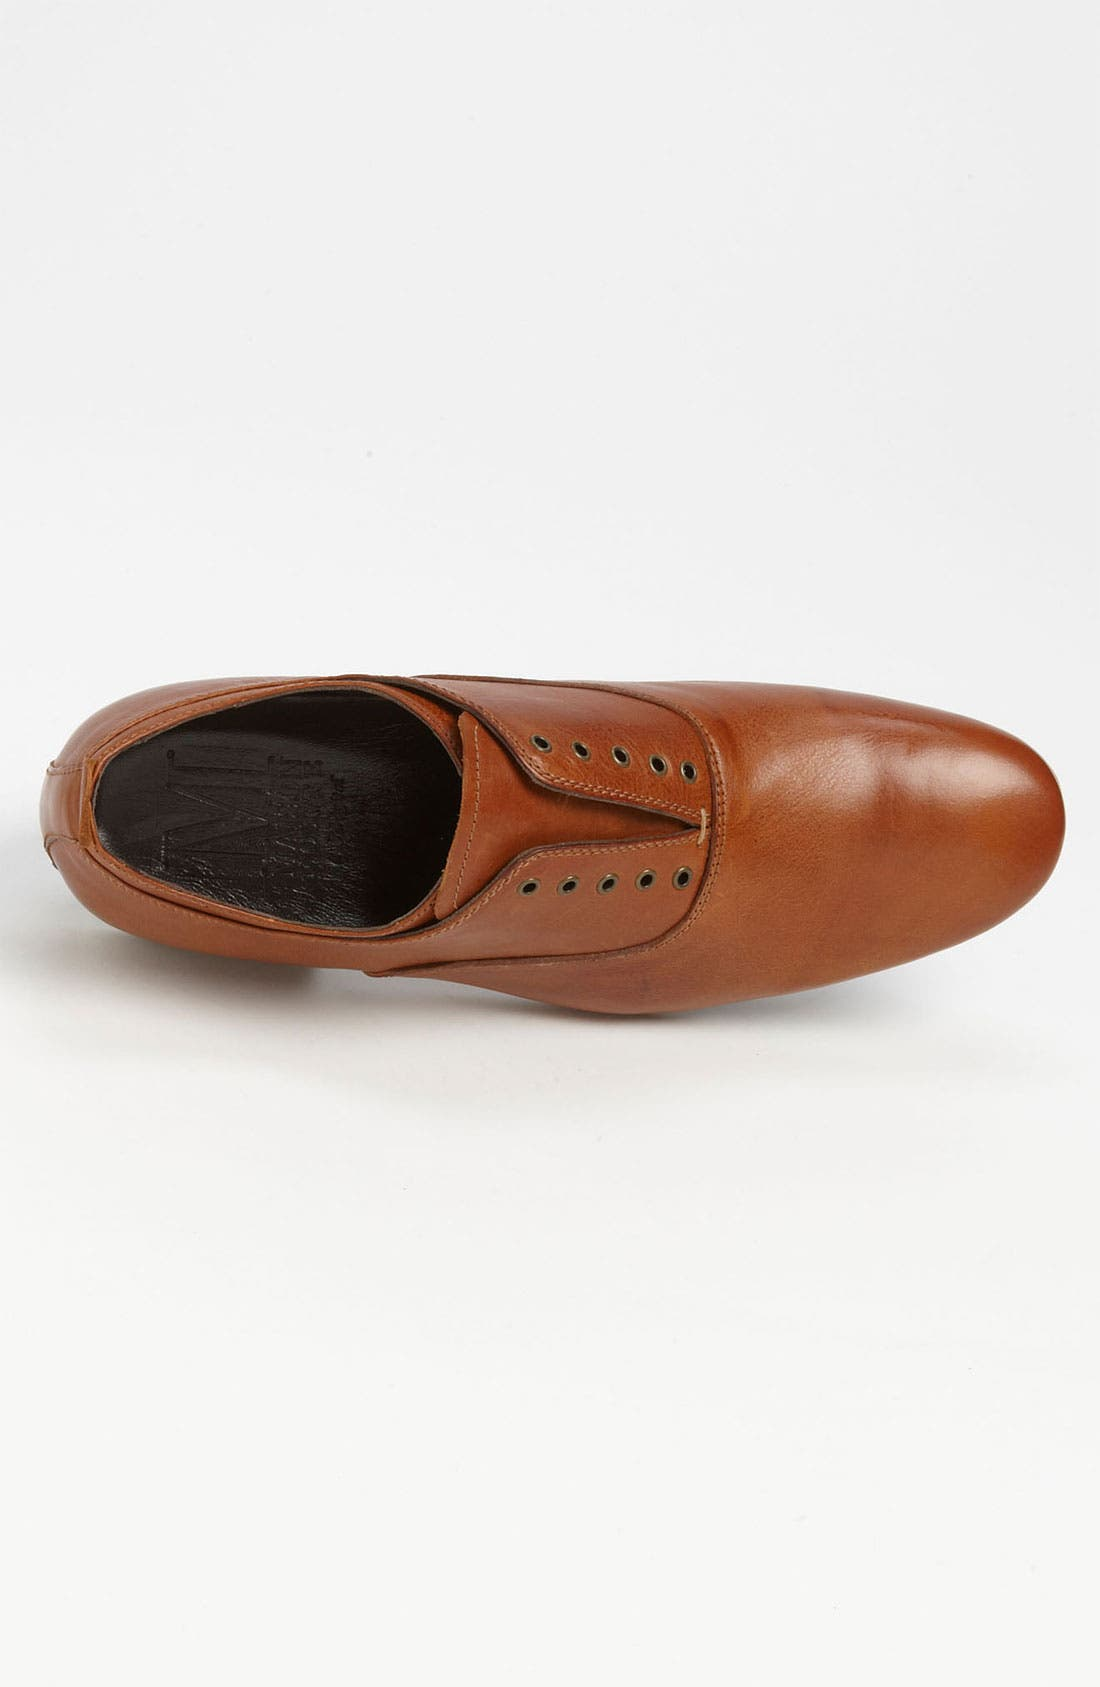 Alternate Image 3  - Maison Forte 'Van de Rohe' Laceless Oxford